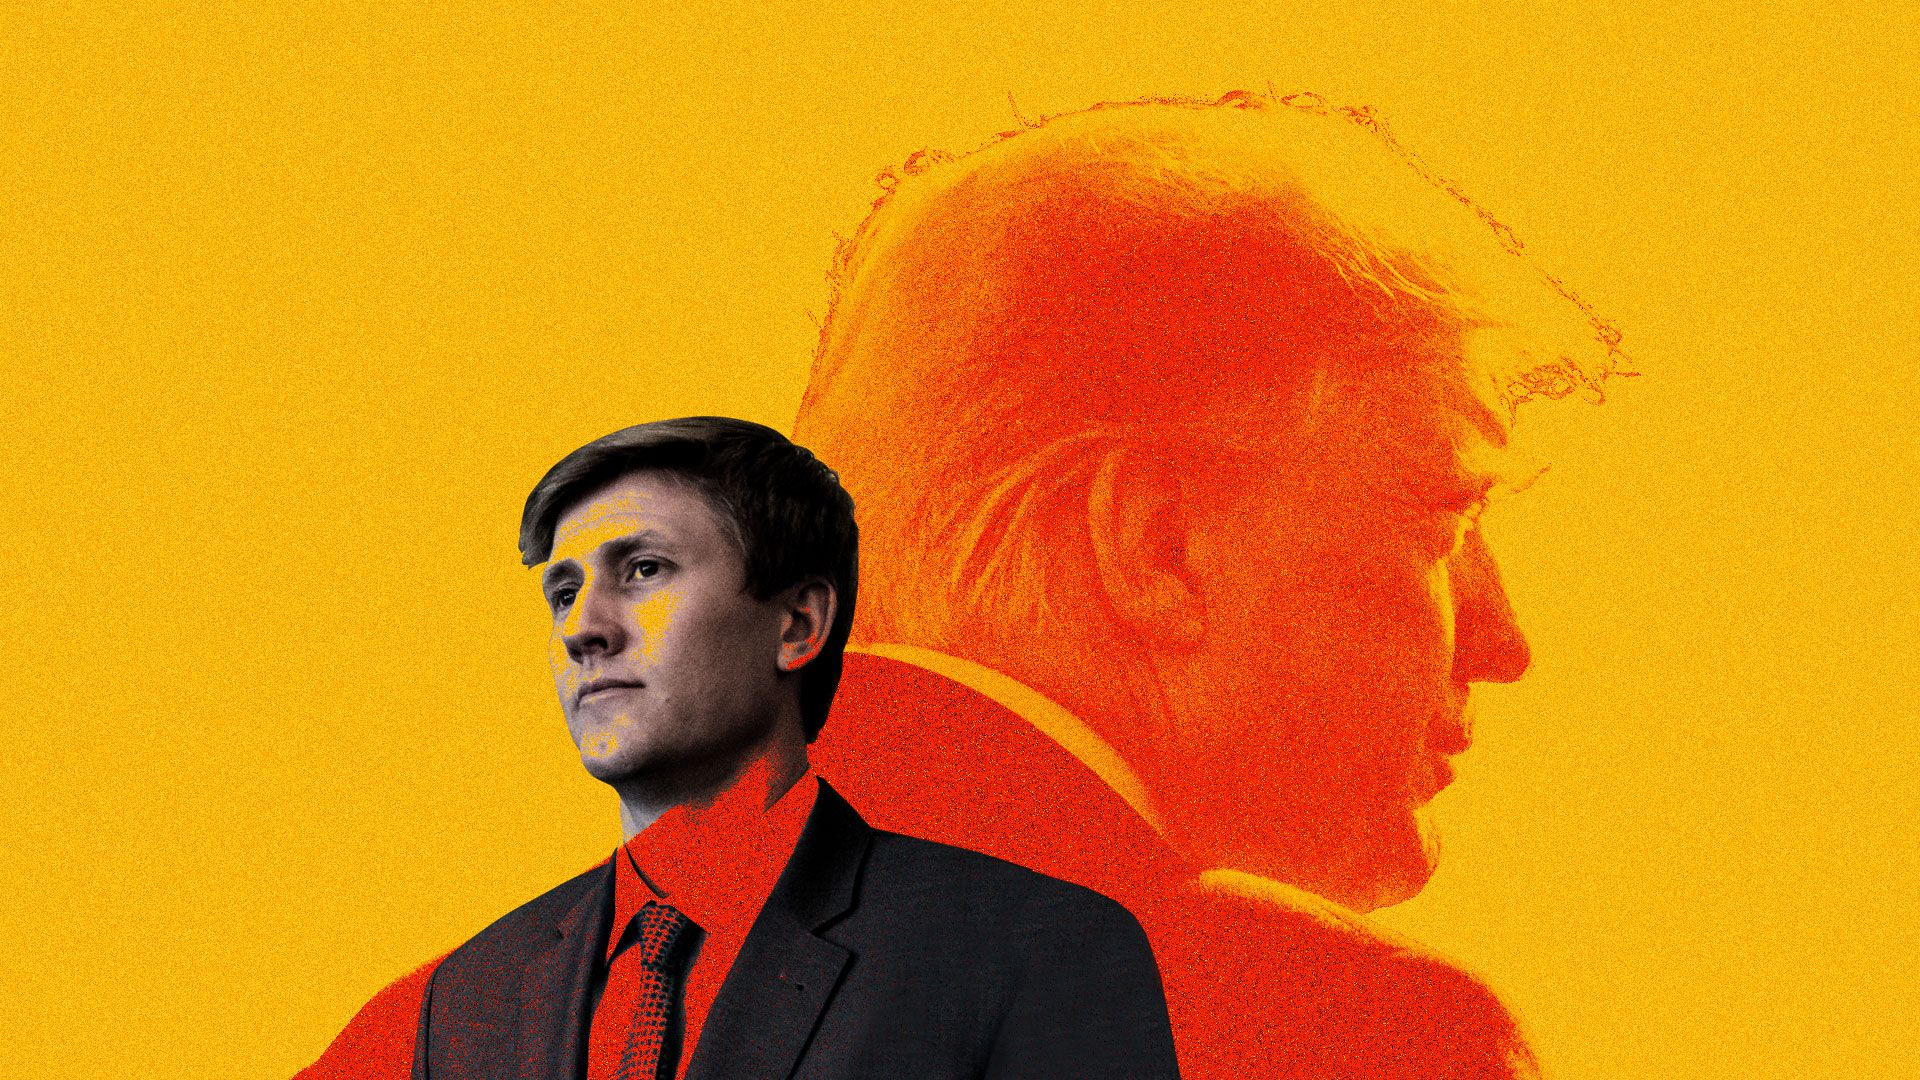 This is an illustration of Nick Ayers, Mike Pence's chief of staff